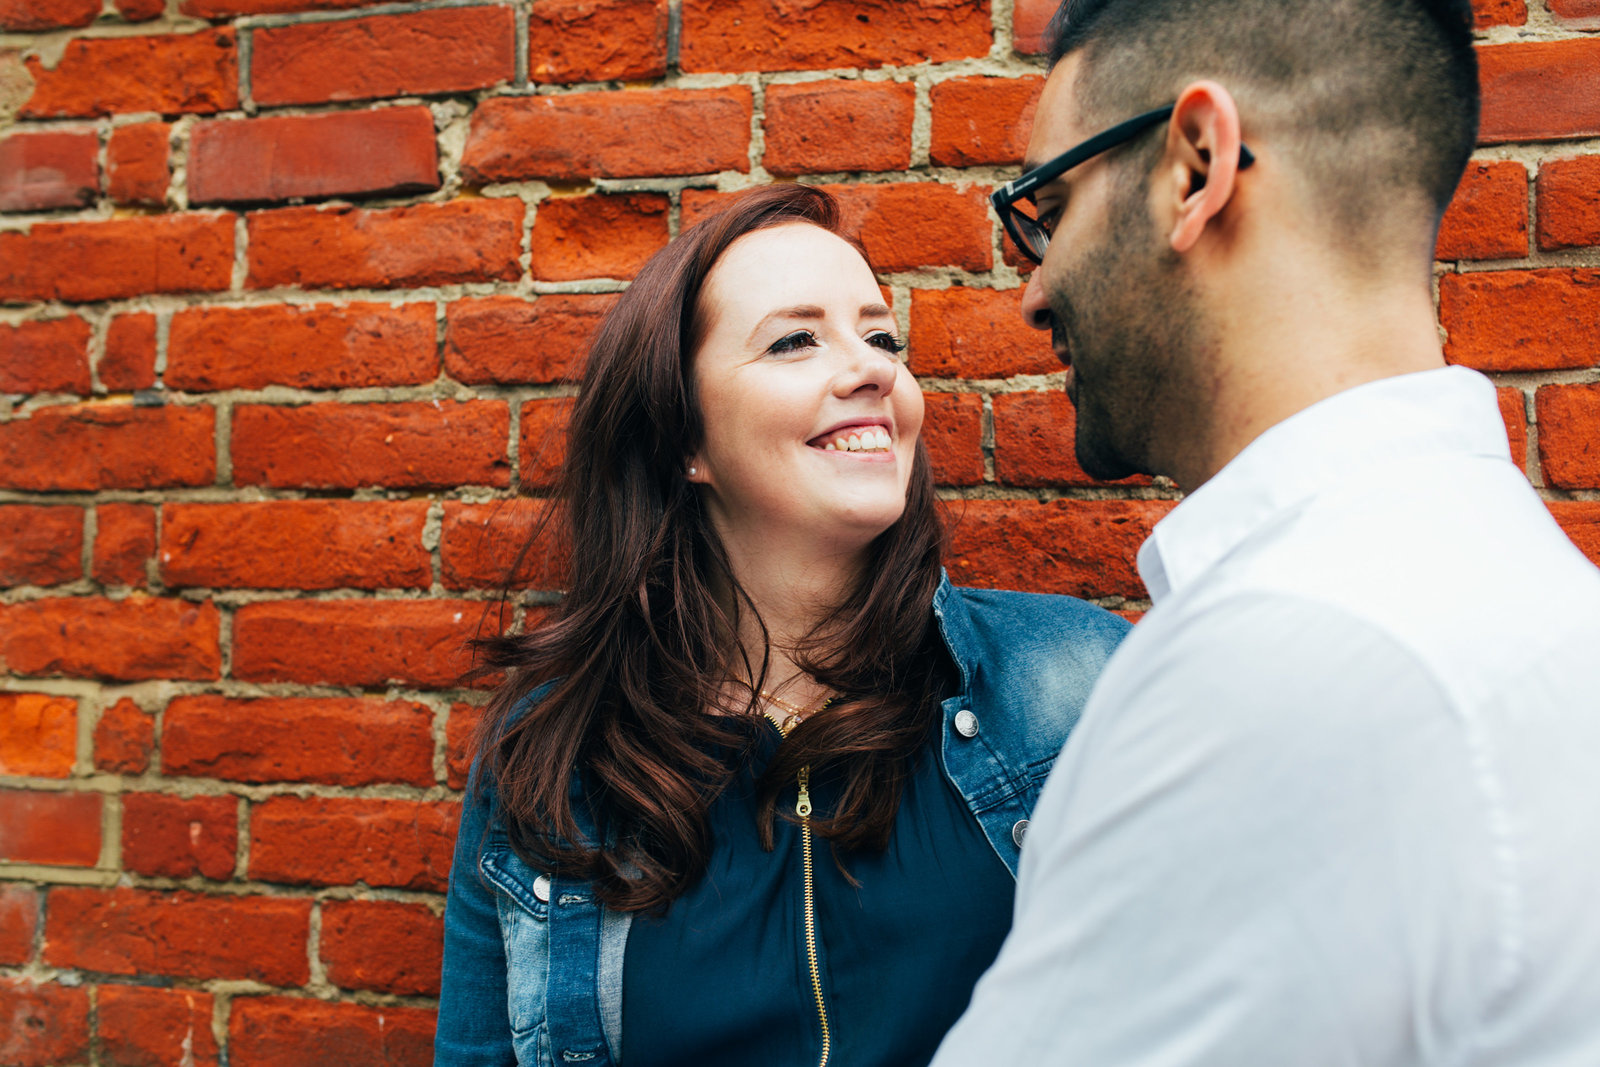 Laughing engaged couple lean against red brick wall for a natural couples photo